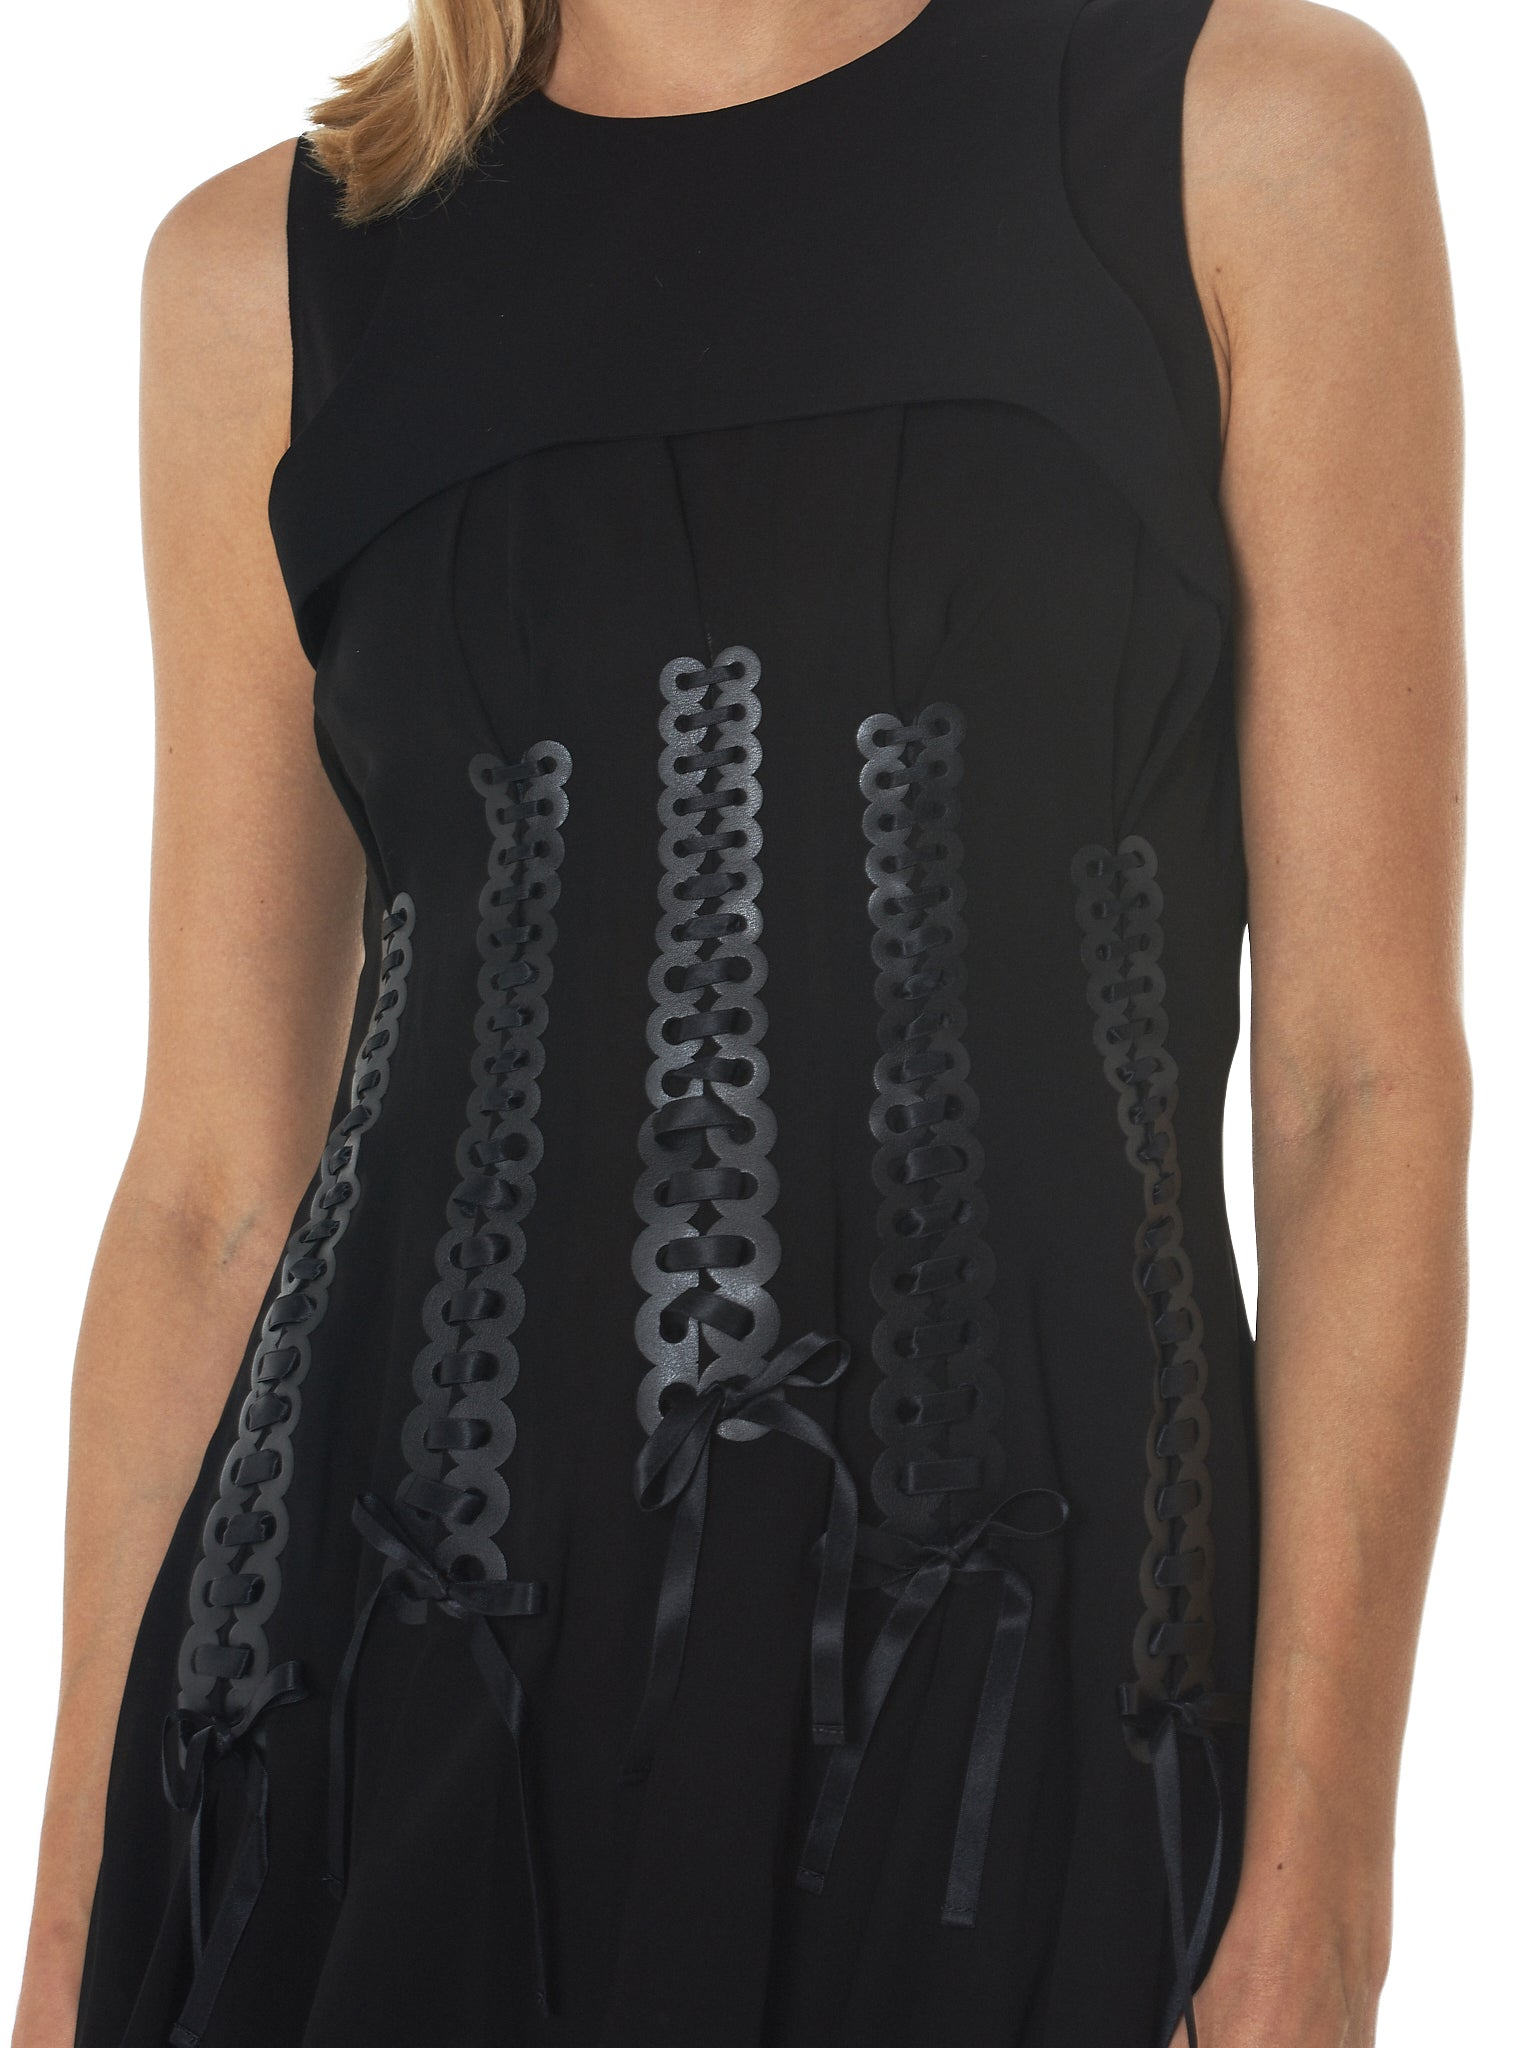 Noir by Kei Ninomiya Sleeveless Dress - Hlorenzo Detail 2